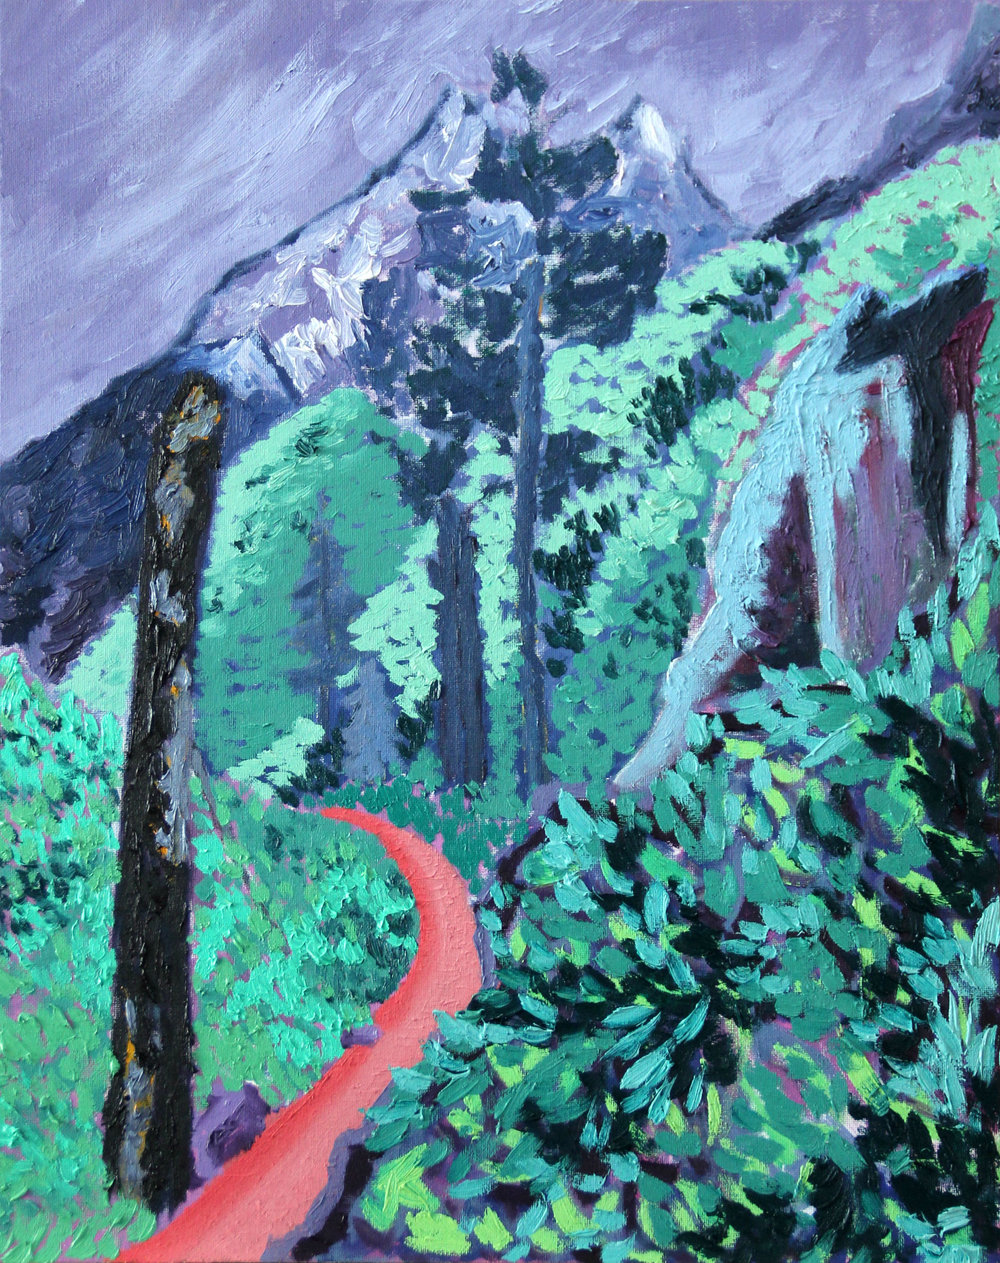 "First, Look Back - 20 x 16 in., oil on canvas panel2017This view from the north-west side of Jenny Lake in Grand Teton National Park is seen while looking back and hiking away from the mountain range. In this easily overlooked experience, the realization of what has been traversed to reach this present moment comes into view. The title is the phrase the artist declared to the rest of the group on the trail at this time. This work, ""First, Look Back"" is accompanied by its immediate successor ""First Look Back""."